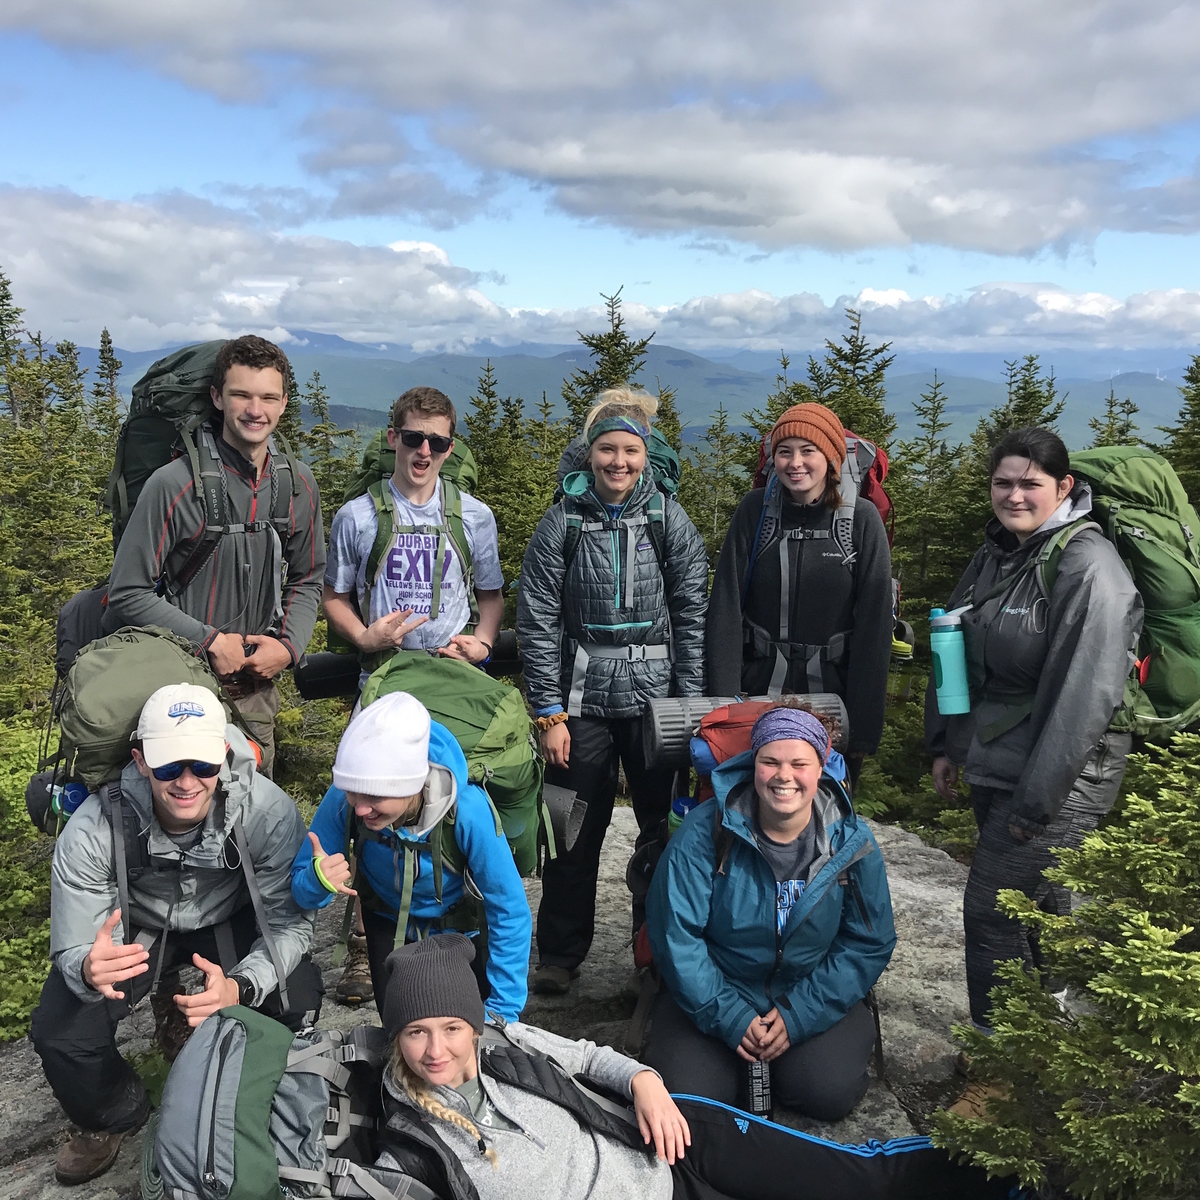 Students on a hike pose at the summit in the White Mountains